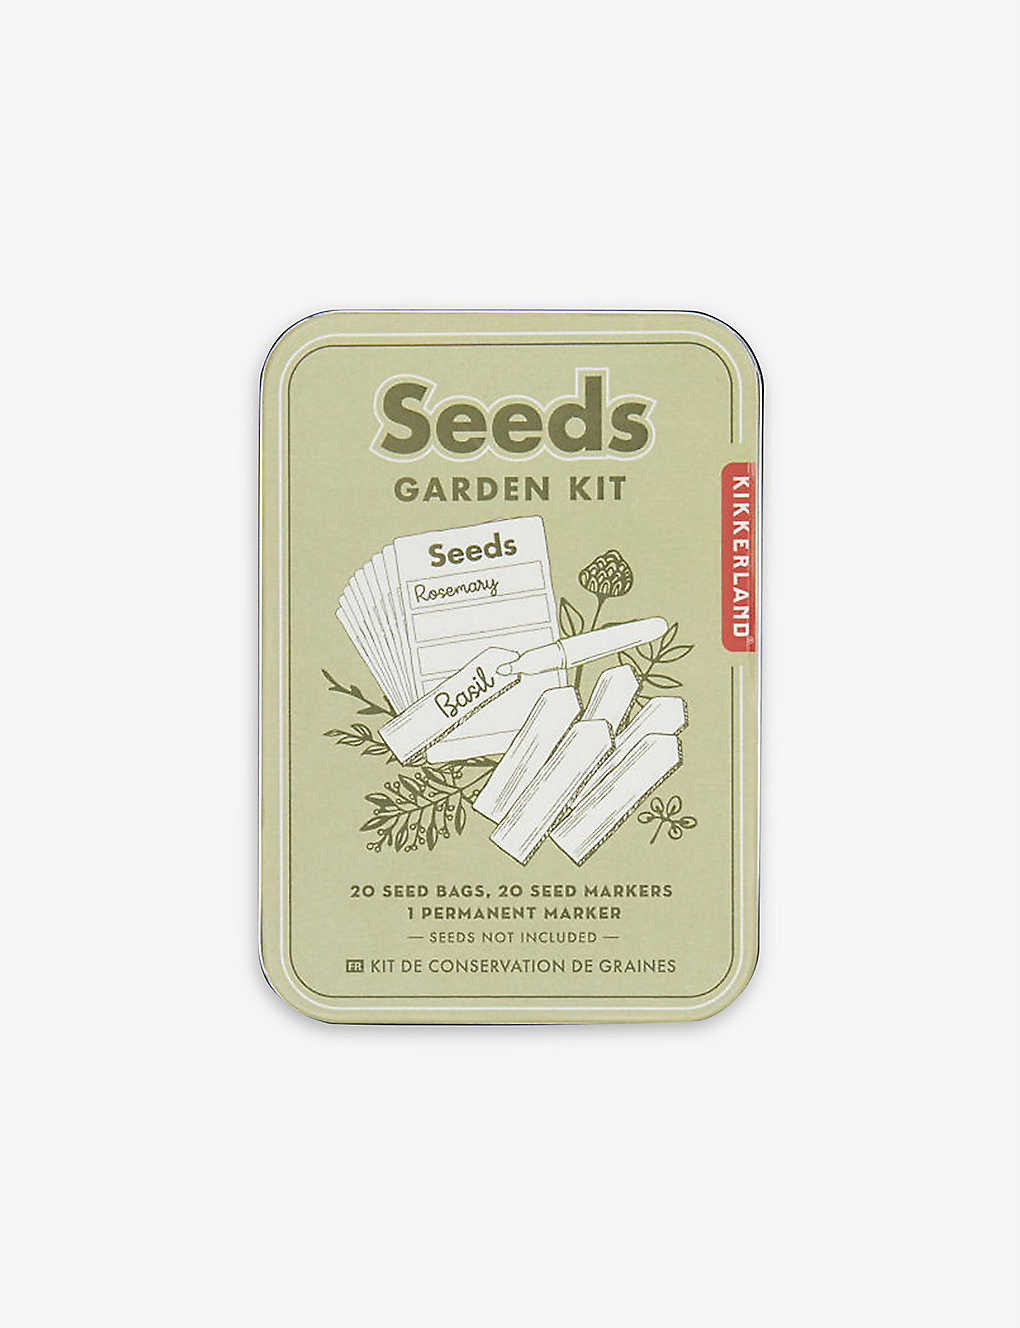 Seeds Garden Kit from Kikkerland